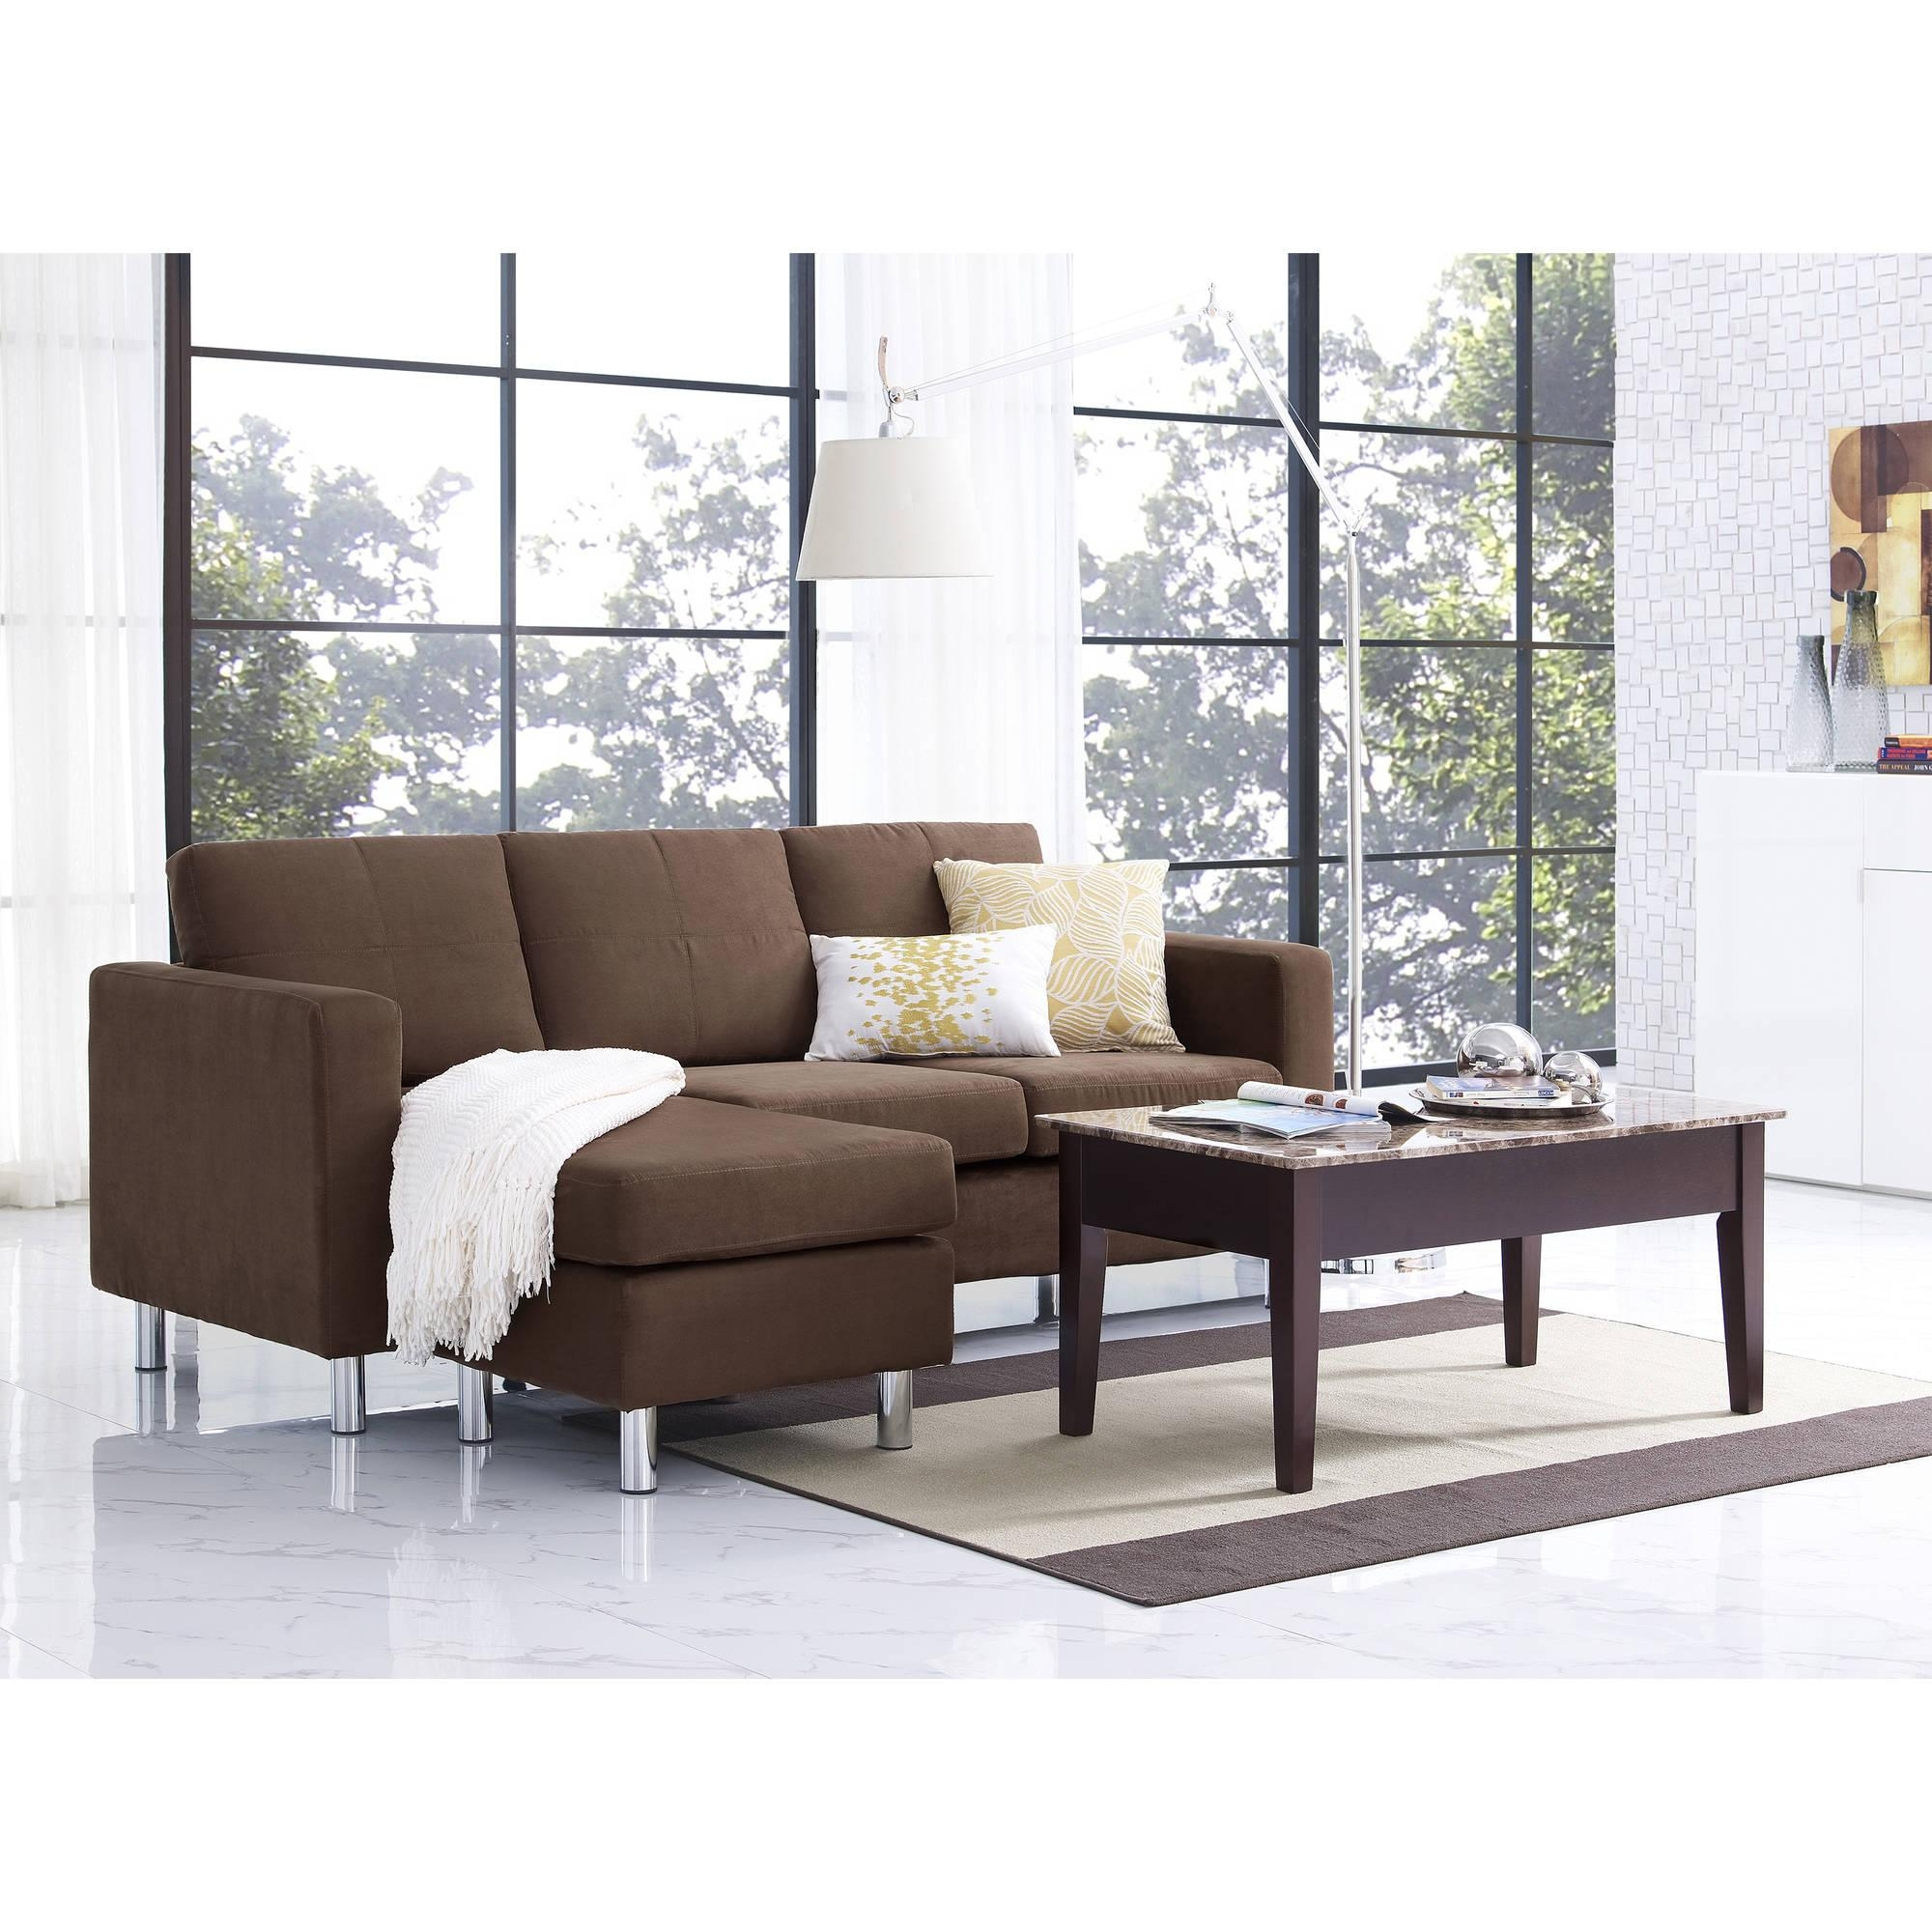 Dorel Living Small Spaces Configurable Sectional Sofa, Multiple Pertaining To Sectional Sofas In Small Spaces (View 4 of 20)